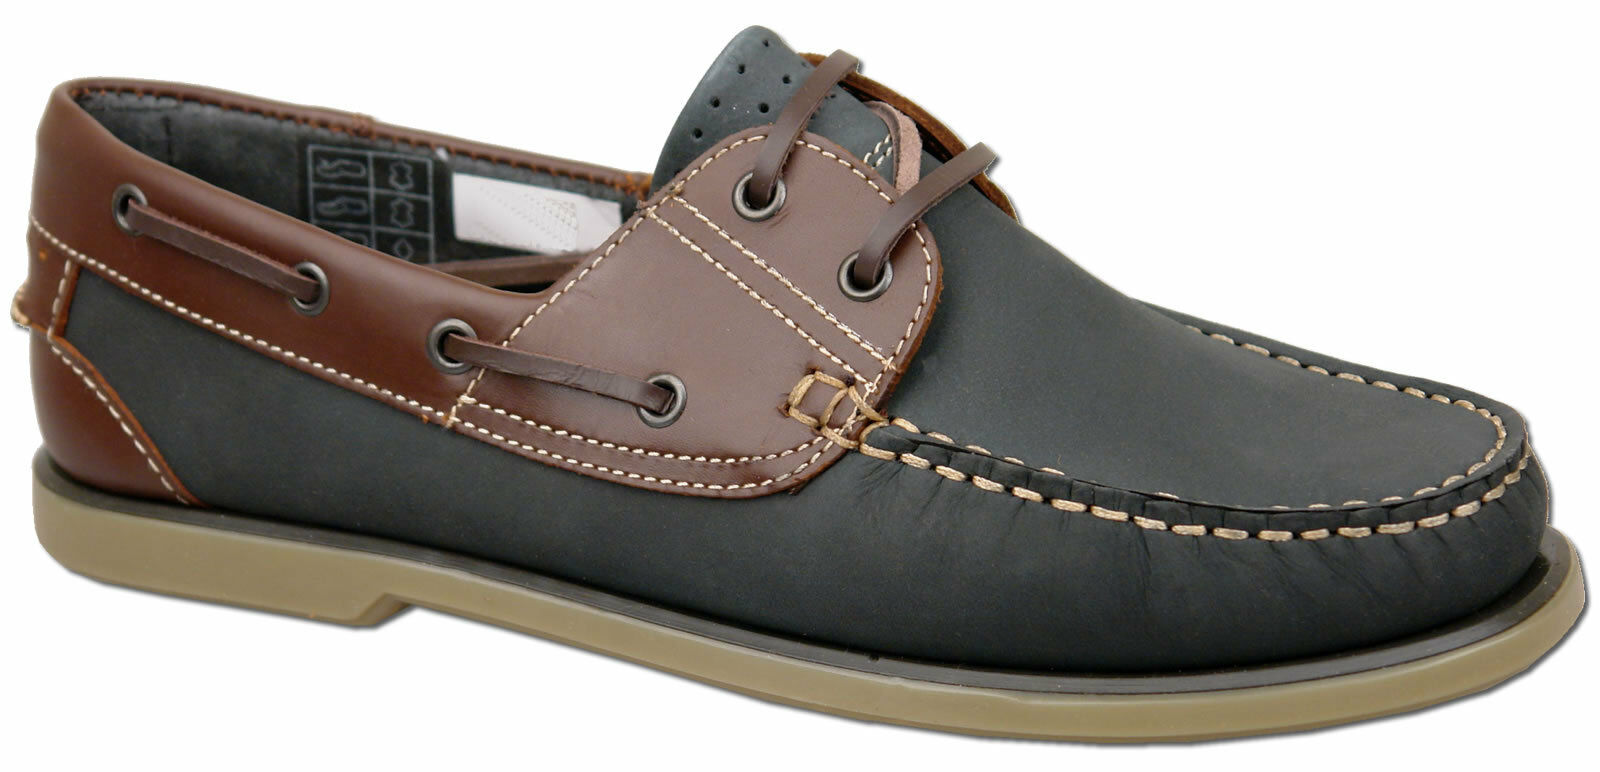 Mens Brand New bluee Lace Up Leather Moccasin Boat shoes Size 6 7 8 9 10 11 12